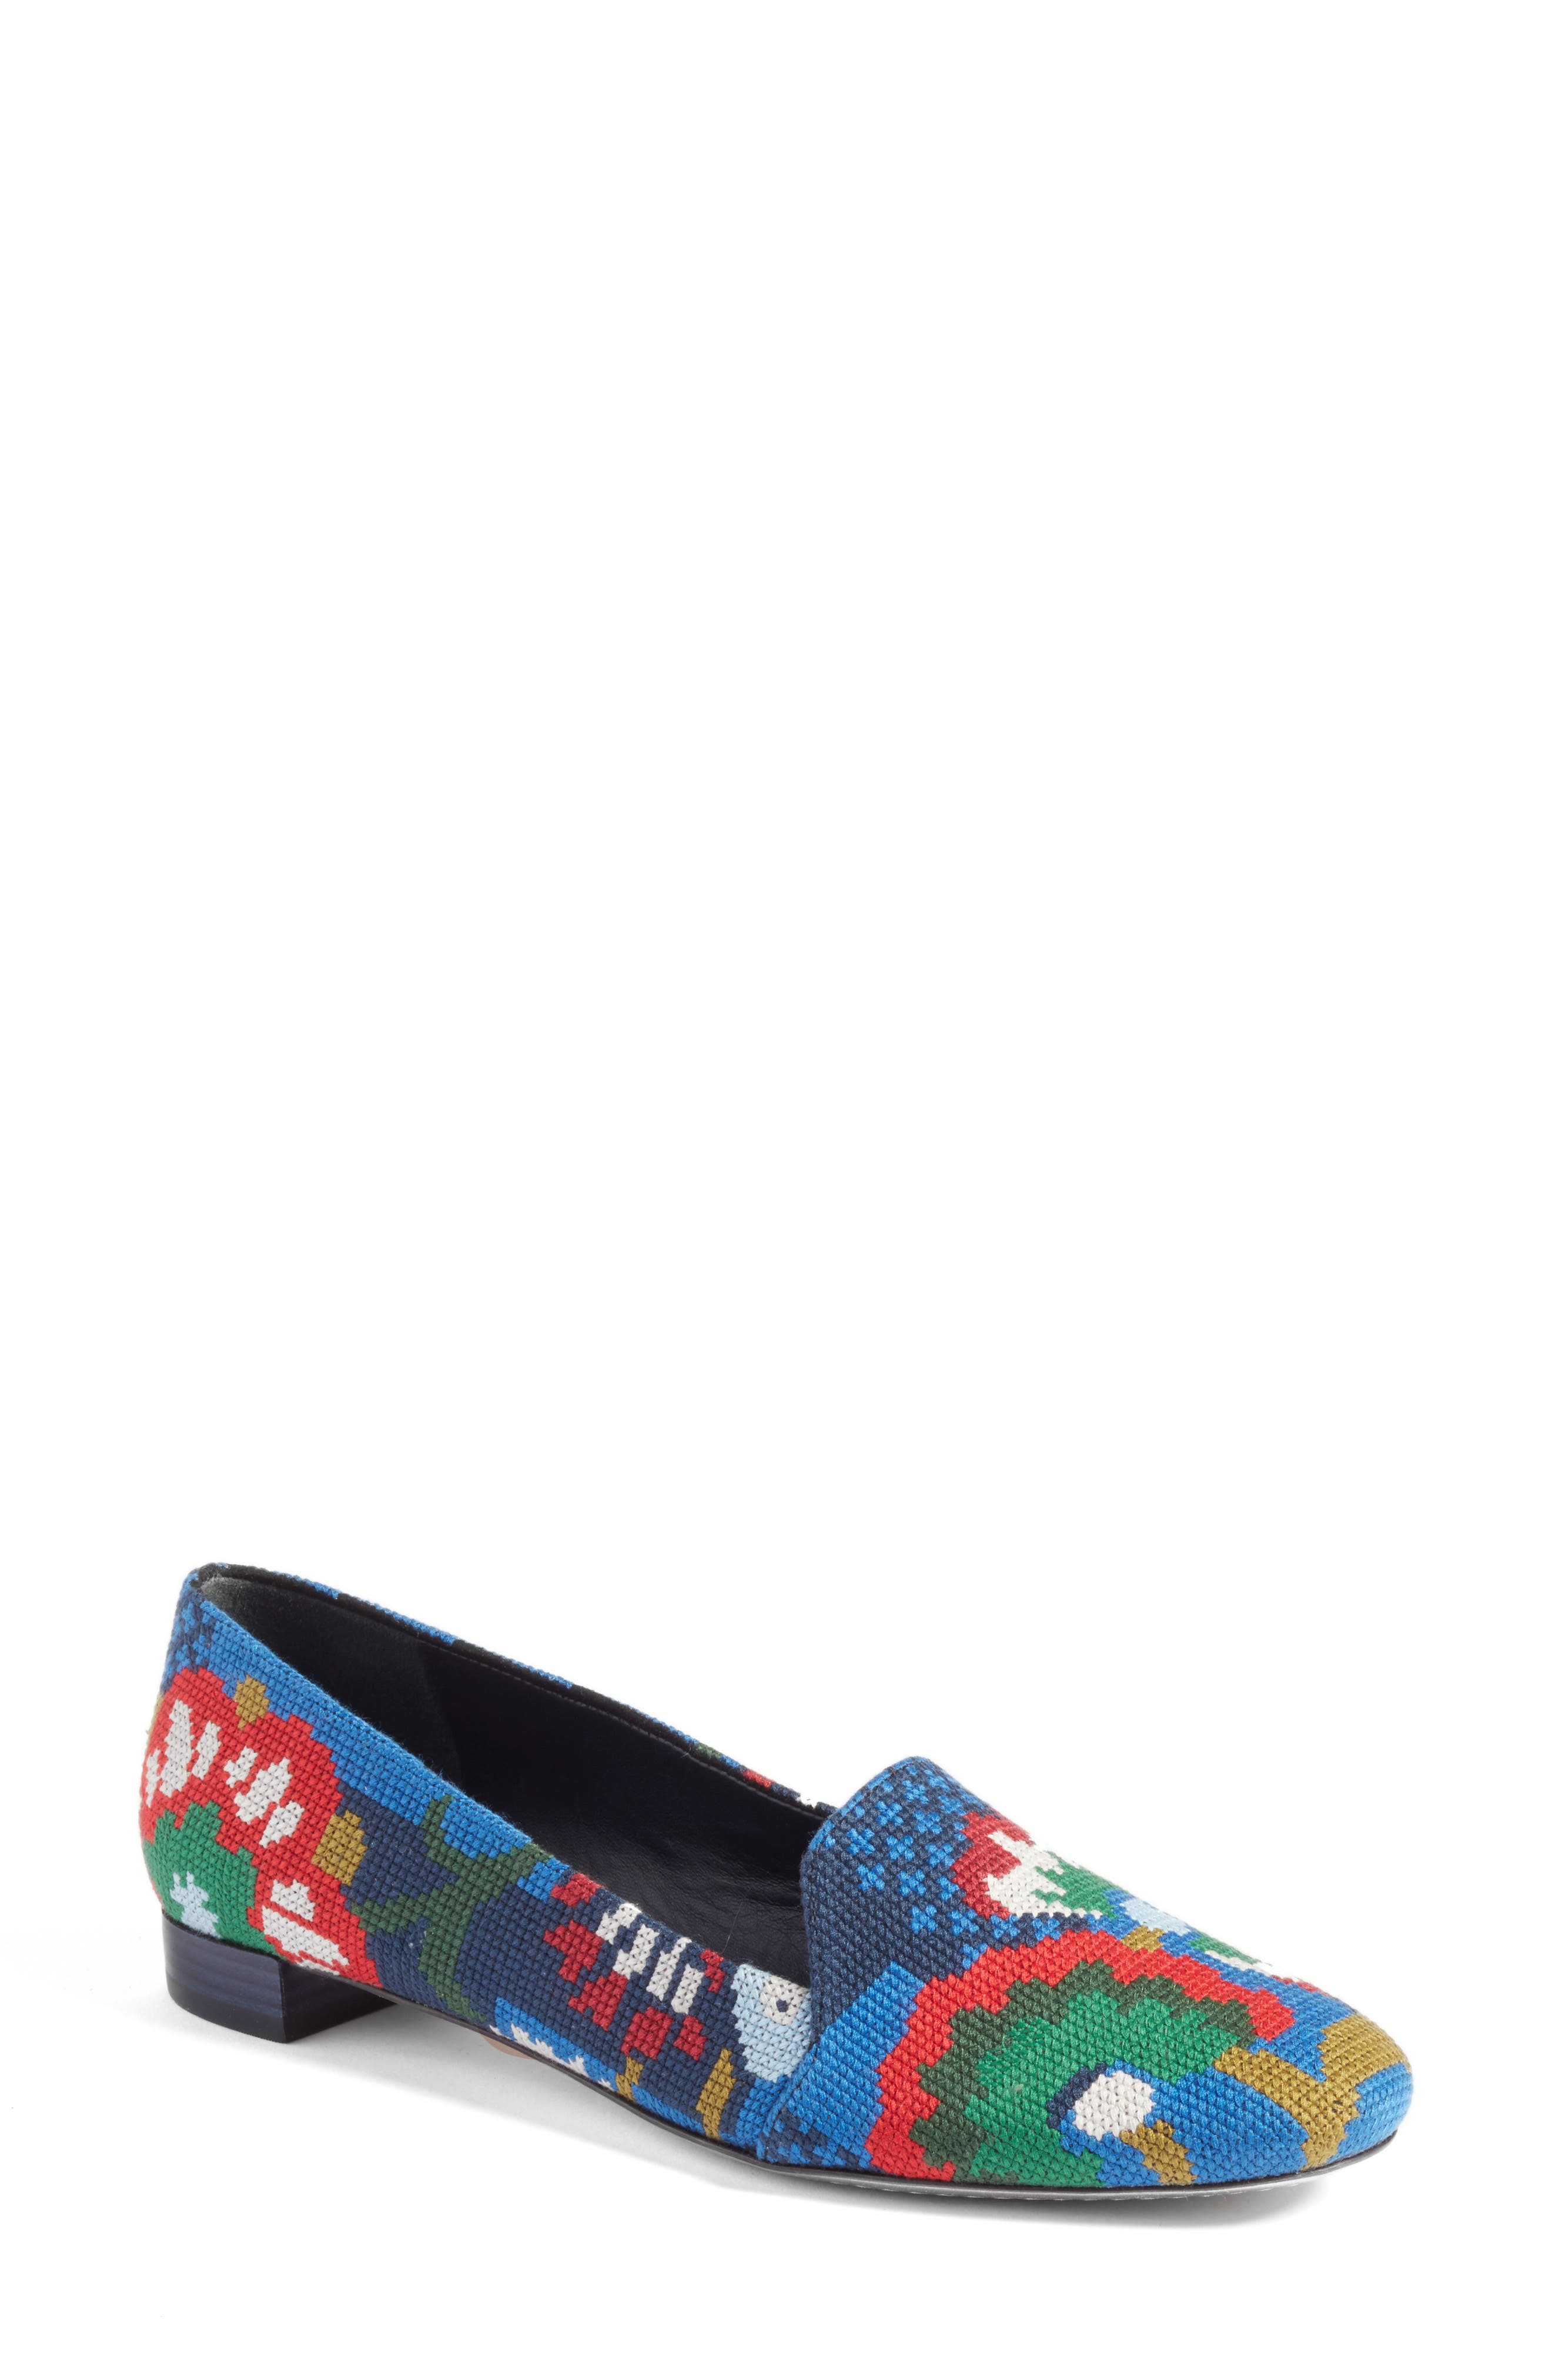 Sadie Floral Cross Stitch Loafer,                             Main thumbnail 1, color,                             478